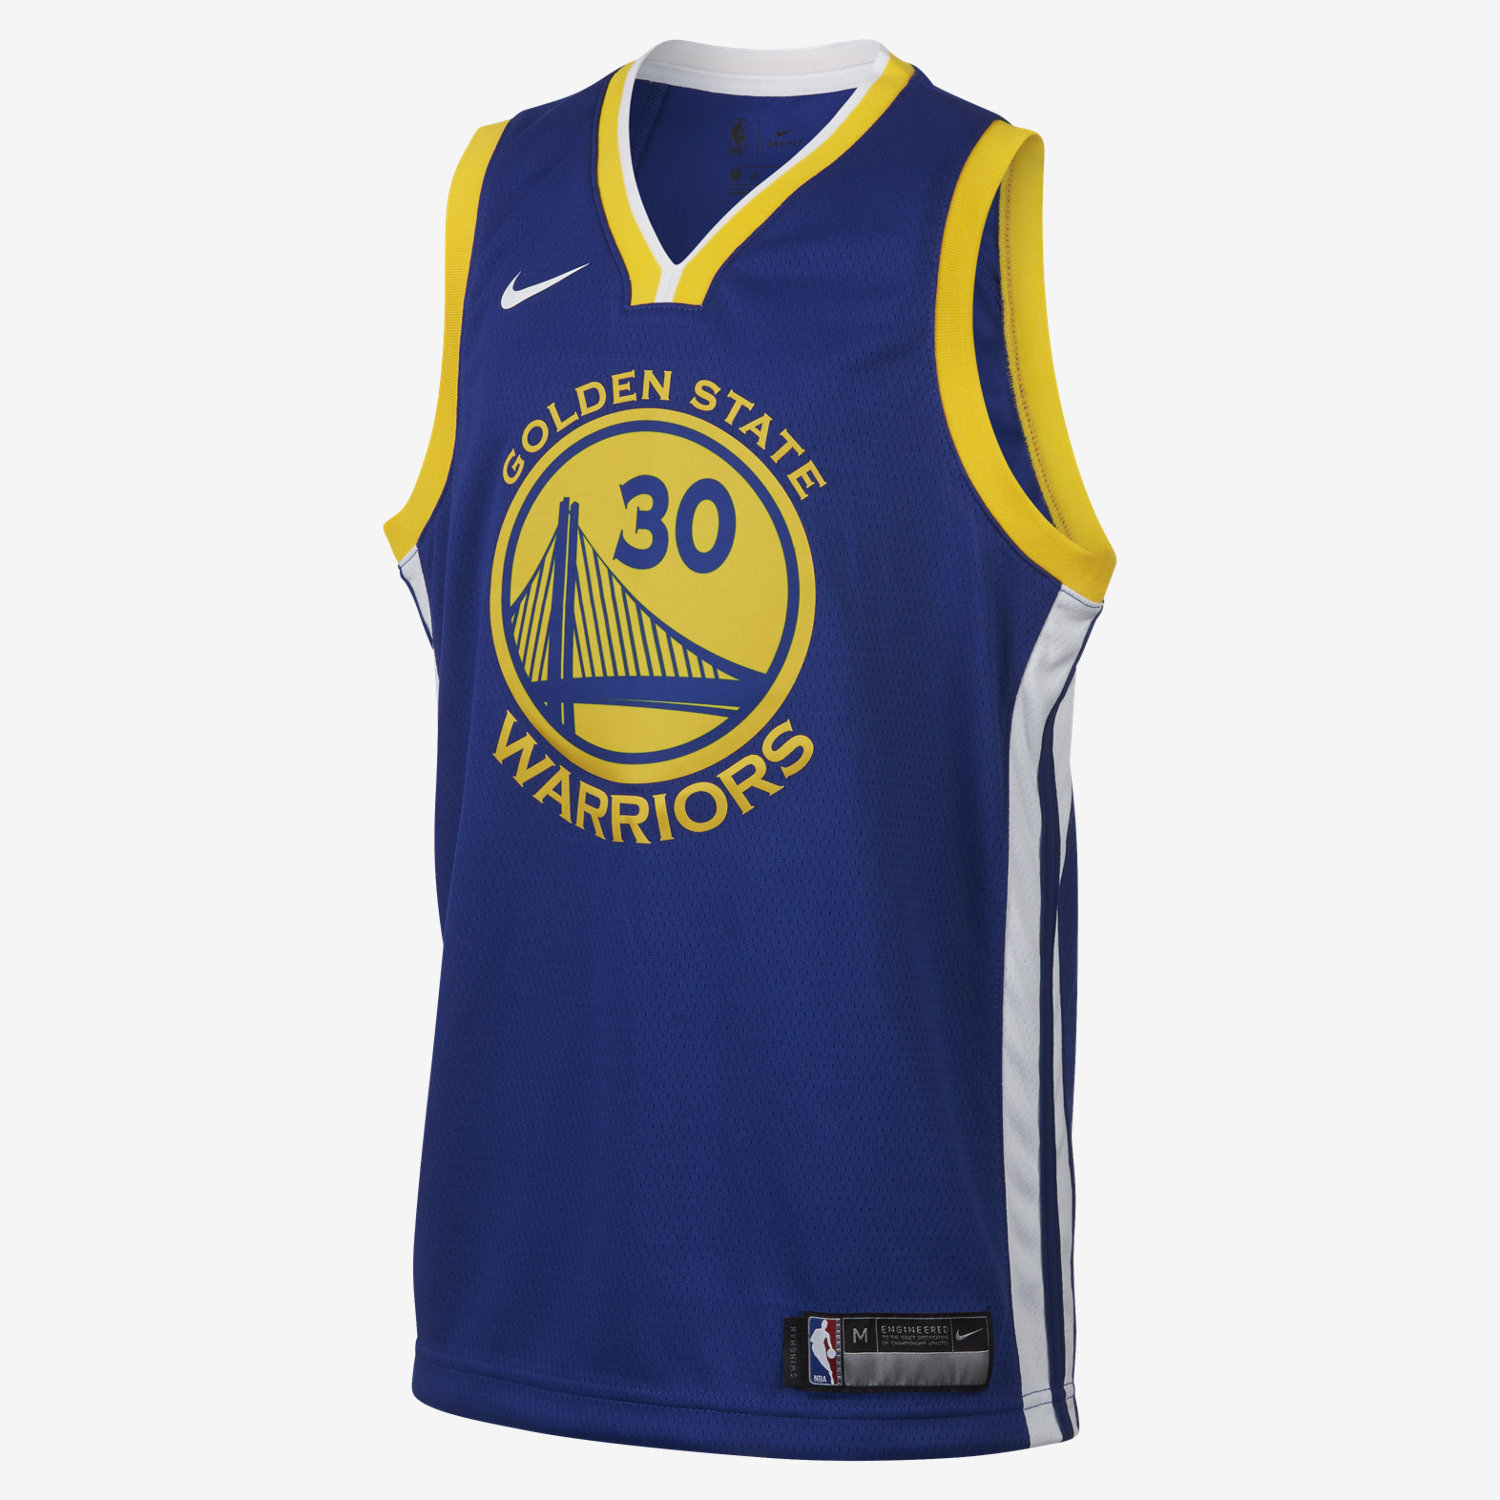 check out 8a7ac e66da Stephen Curry Golden State Warriors Nike Icon Edition Swingman Older Kids'  NBA Jersey